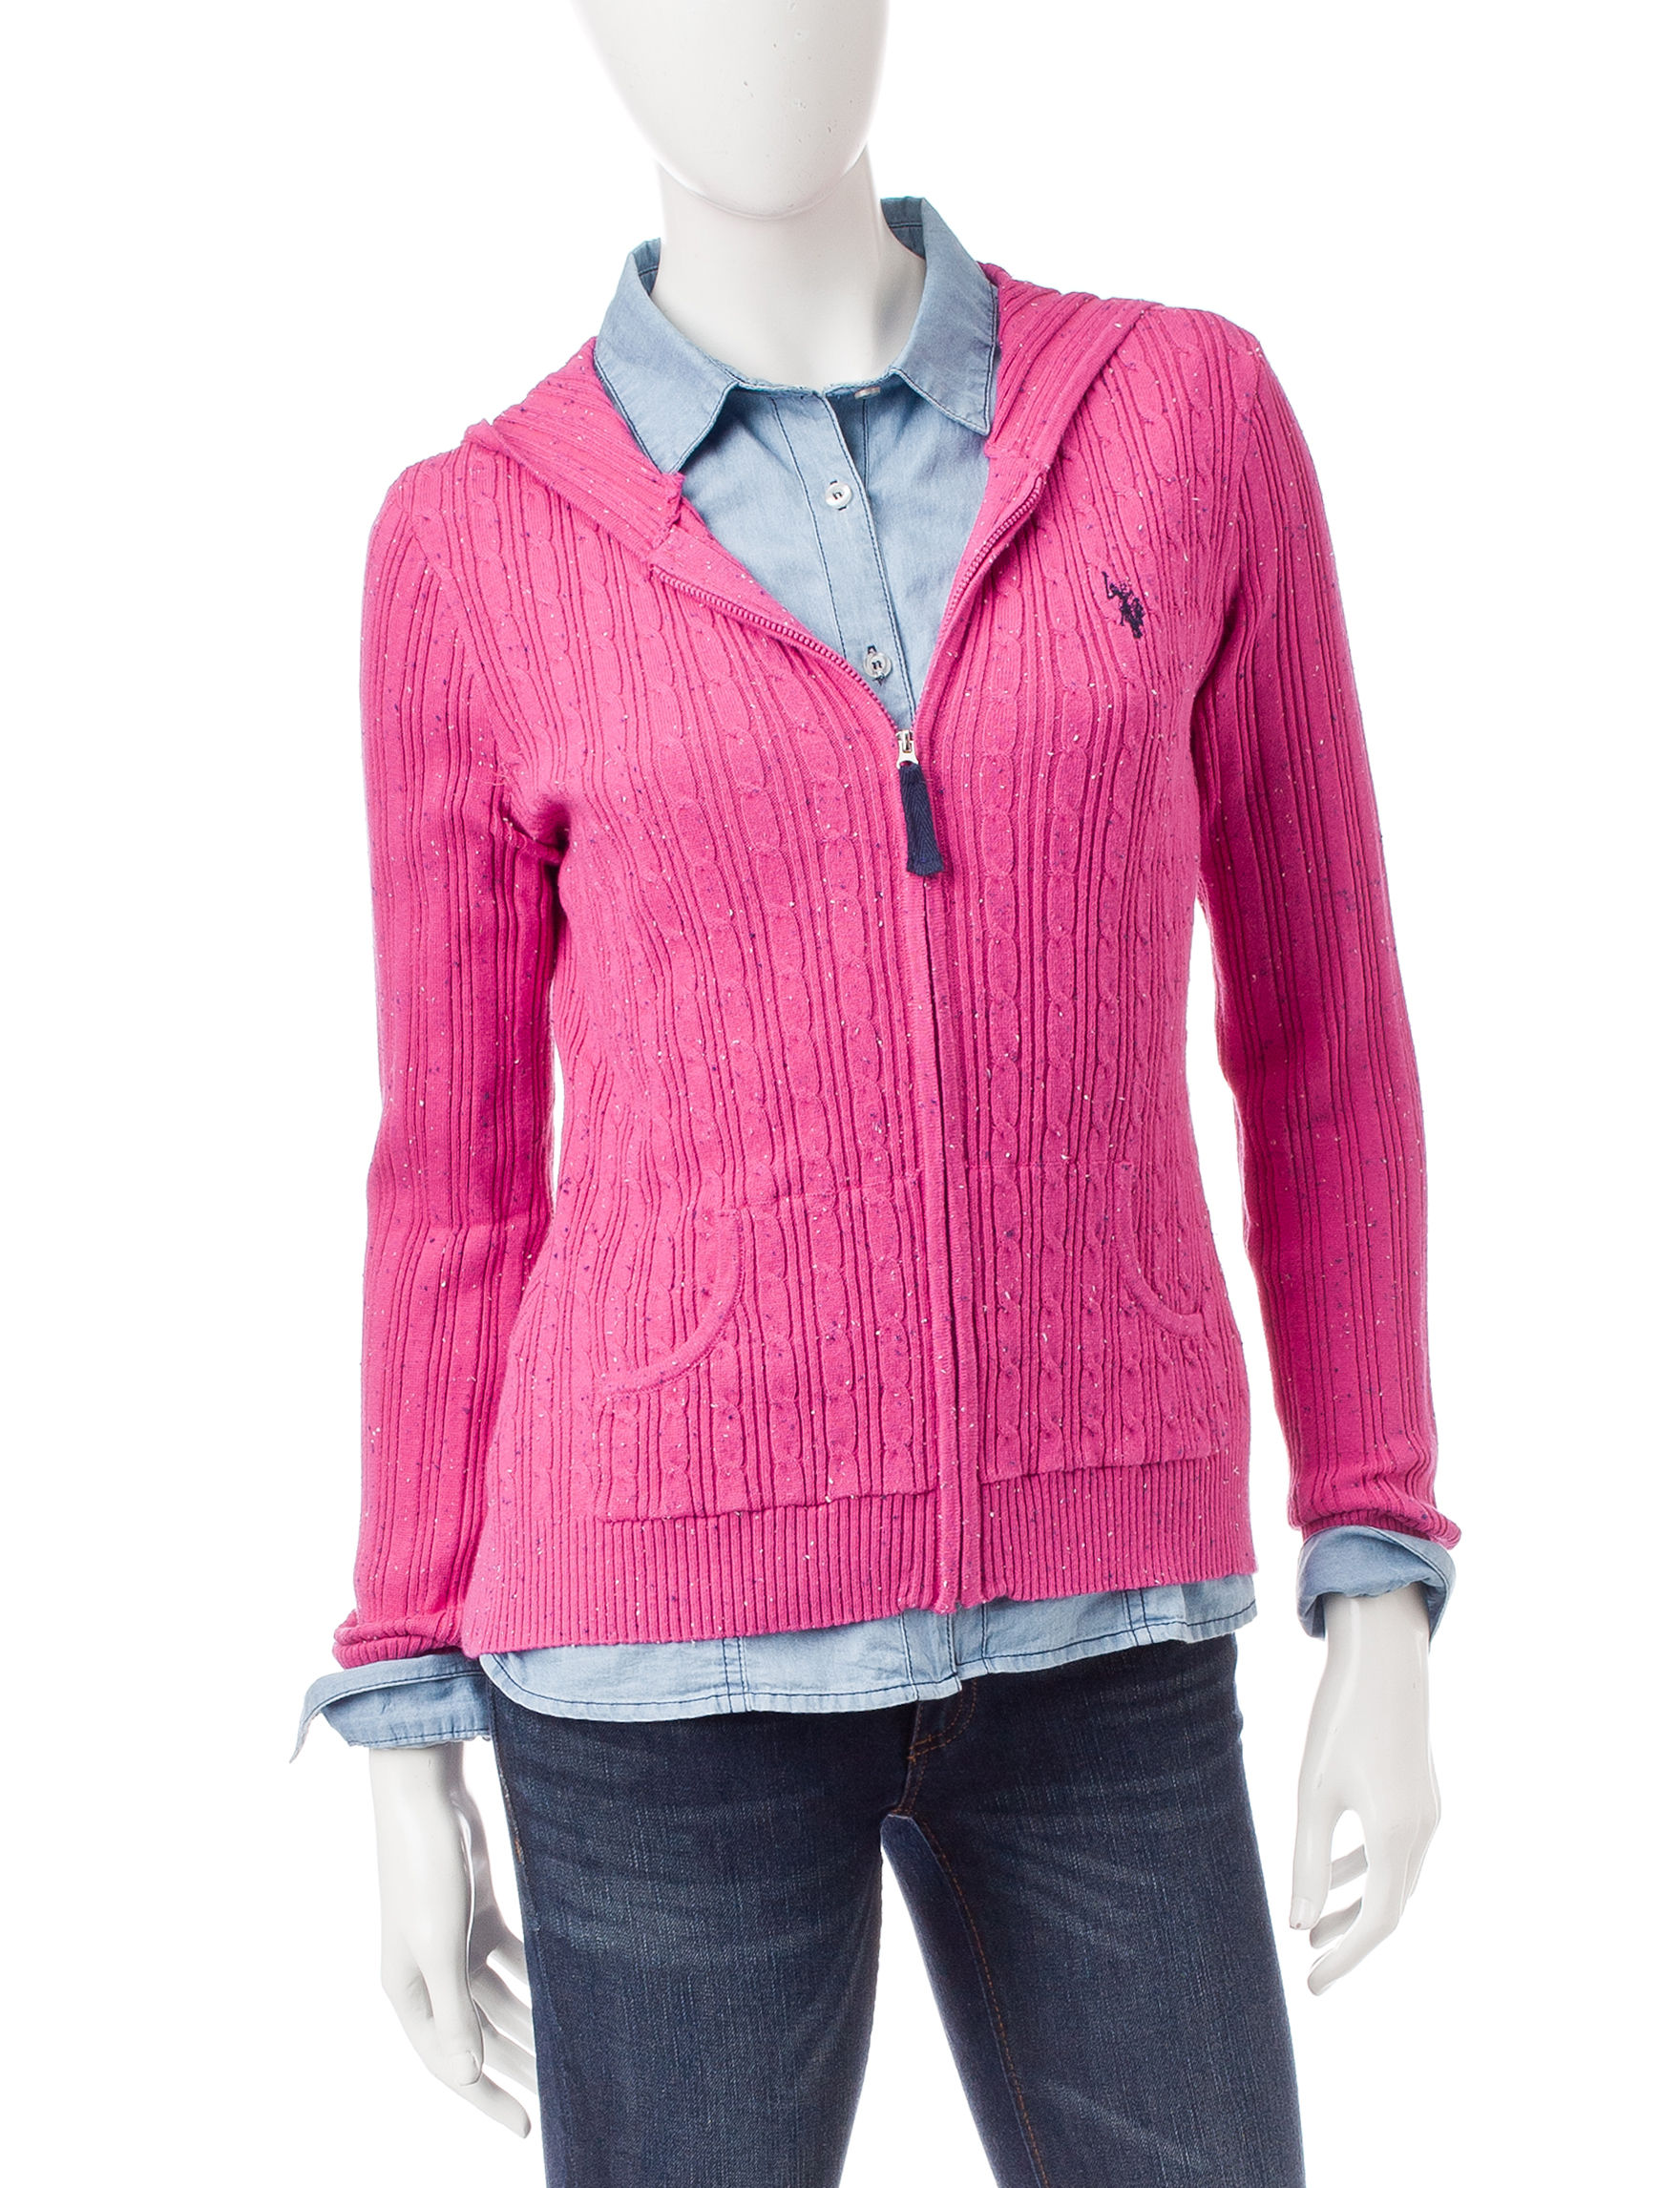 U.S. Polo Assn. Berry Cardigans Sweaters